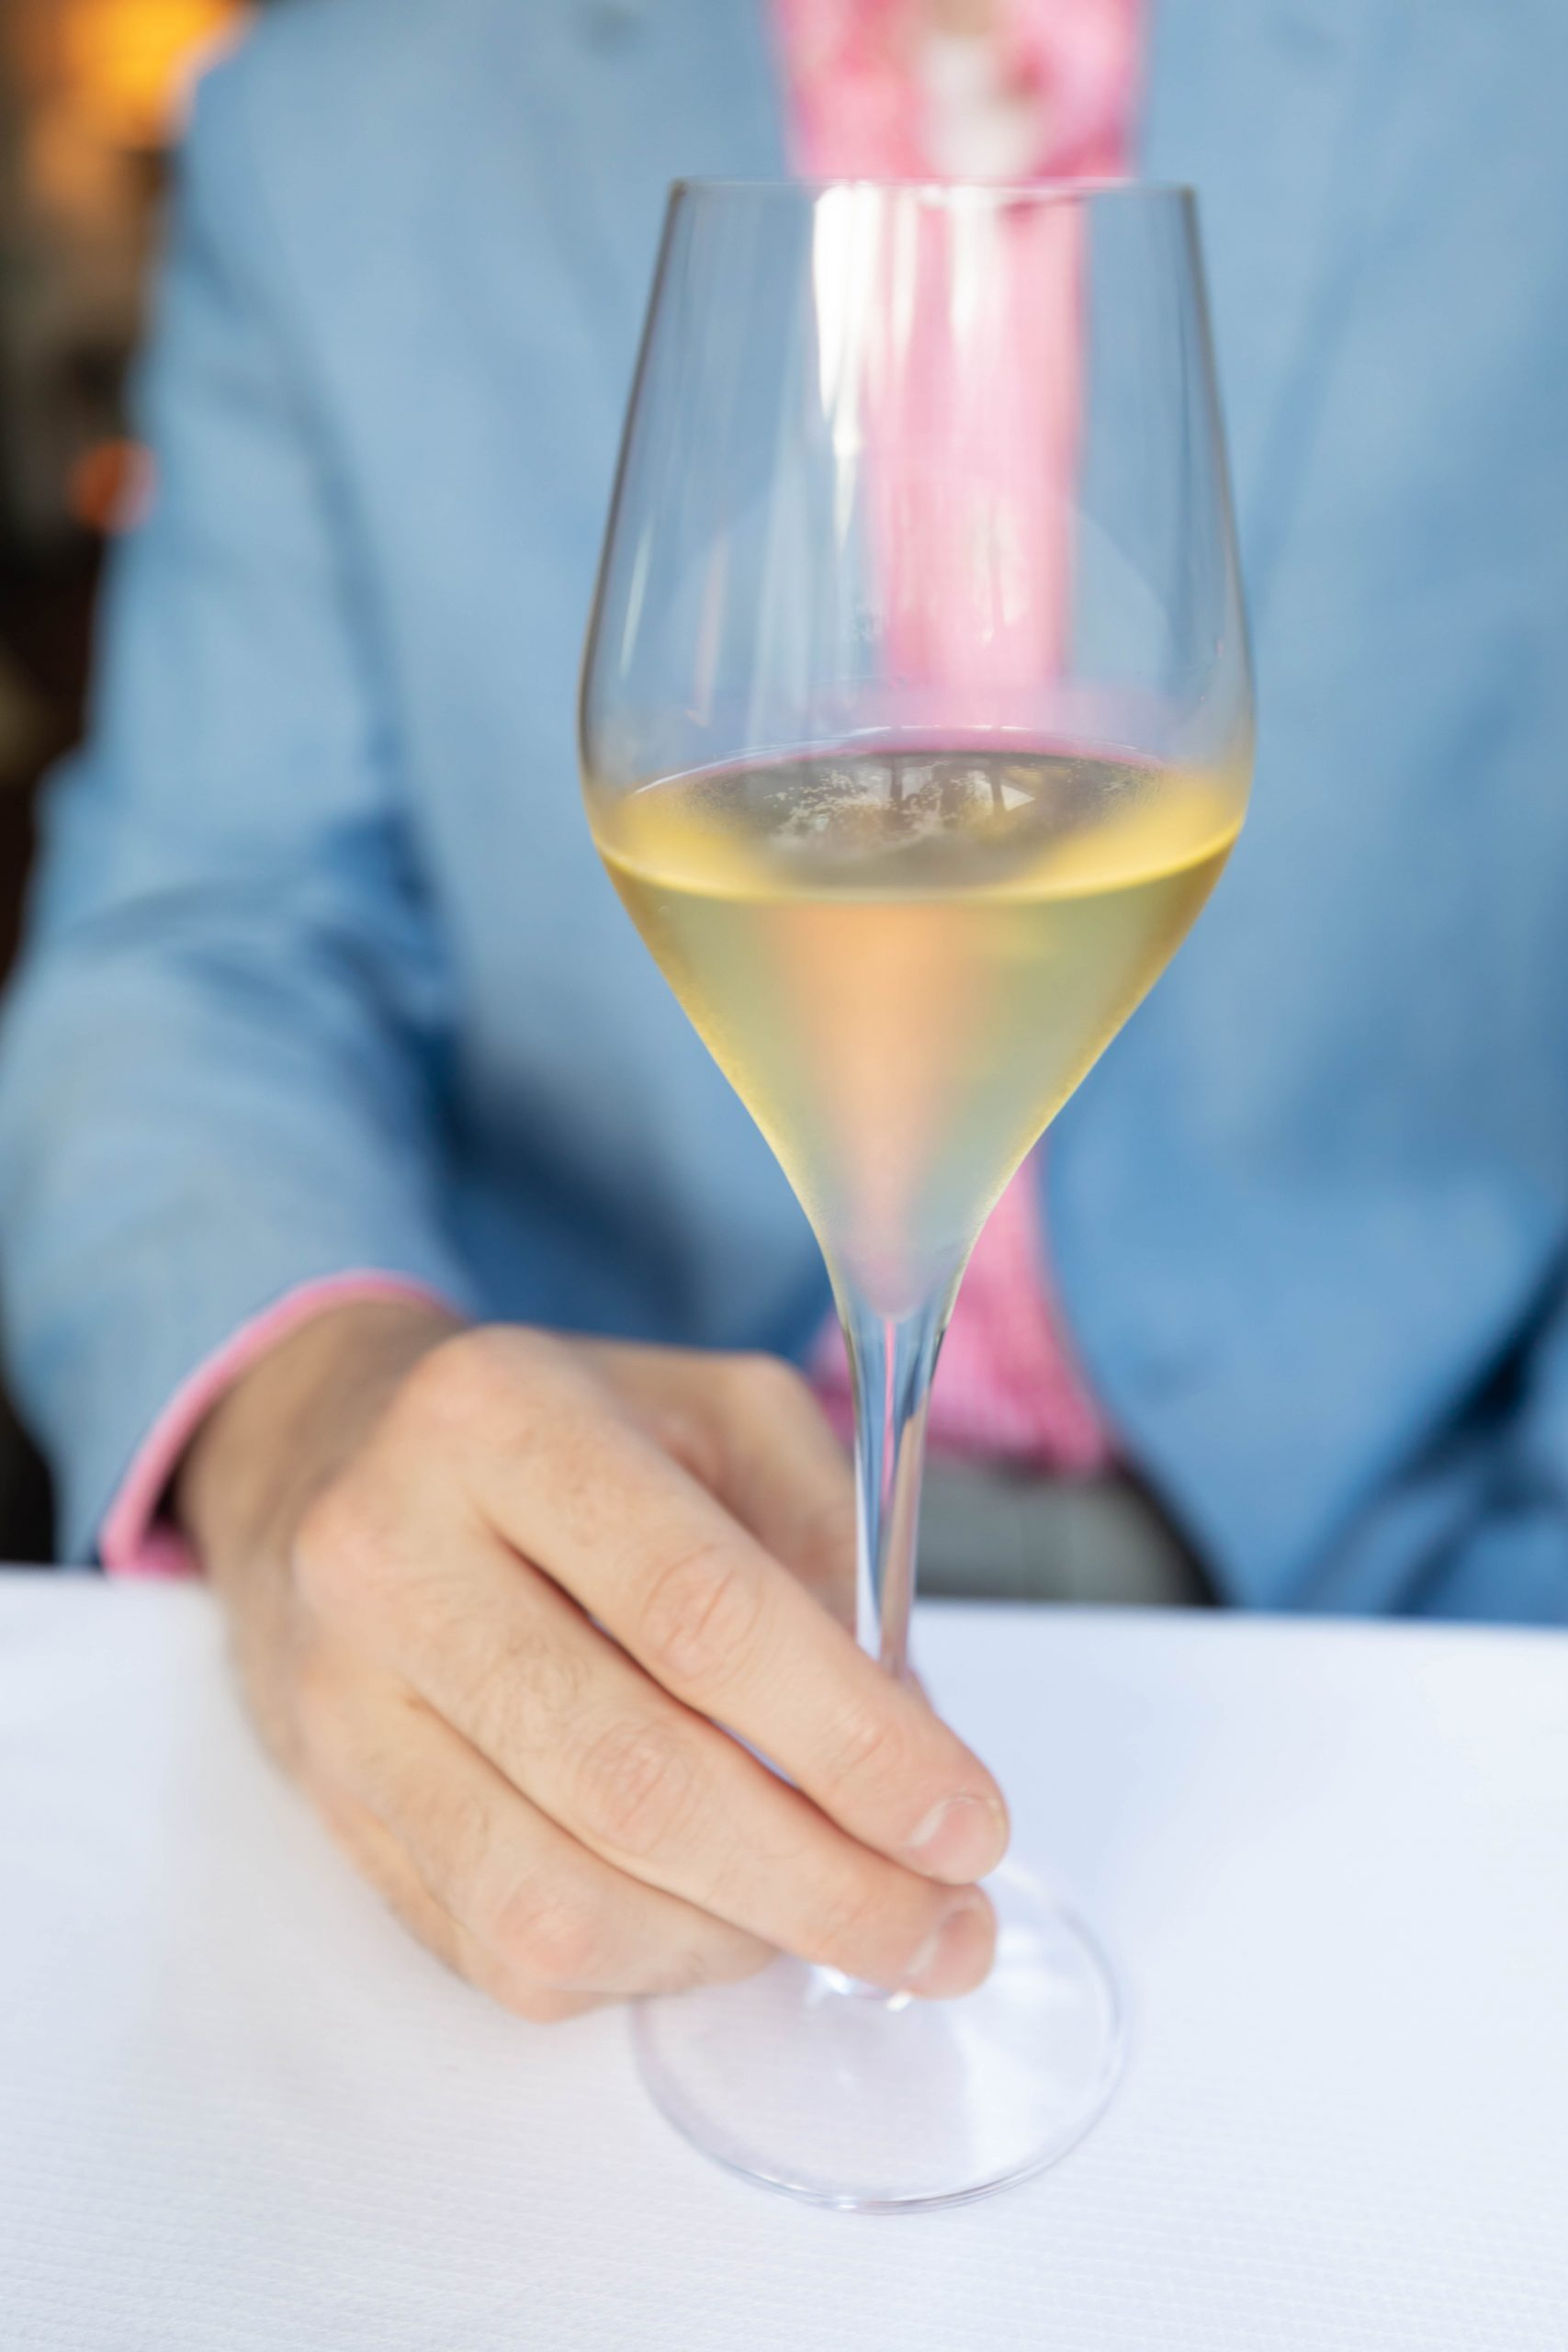 Lise & Bertrand Jousset Chenin Blanc Blend Exile Loire Valley France 2019 Photographed by Annie Fairfax Luxury Travel Writer